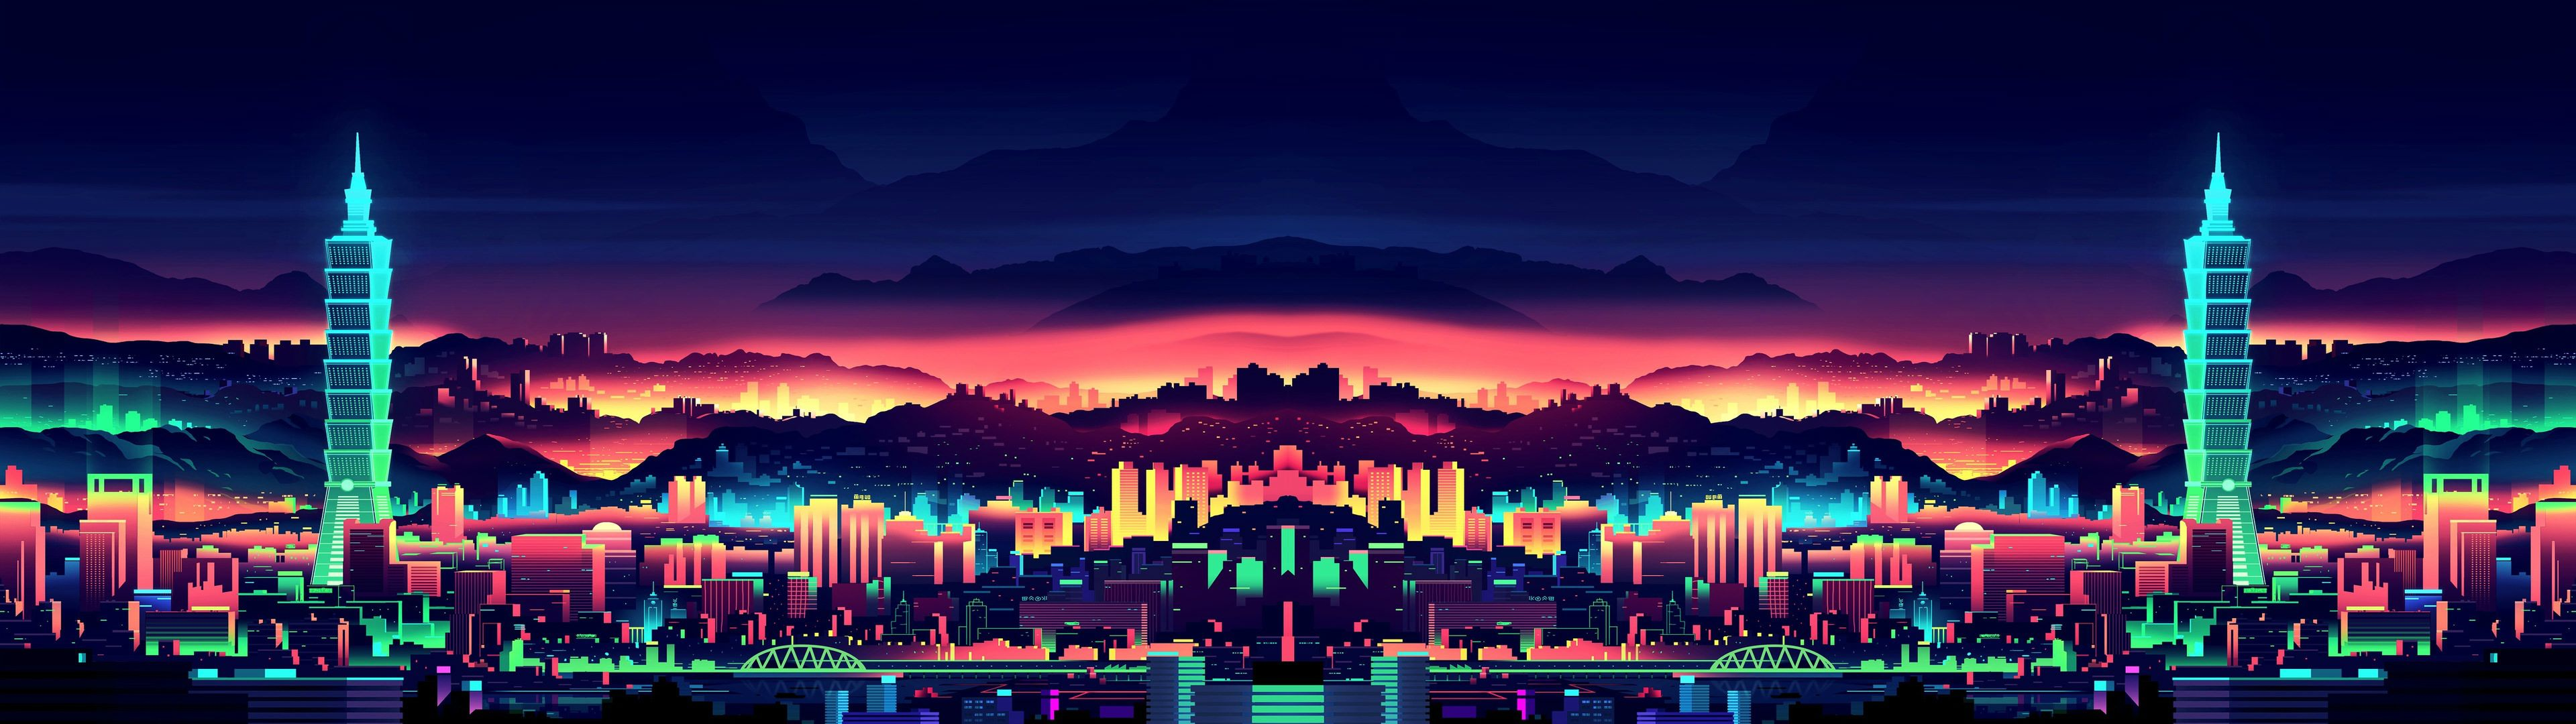 Neon city 3840x1080 wallpaper (1920x1080 versions included ...